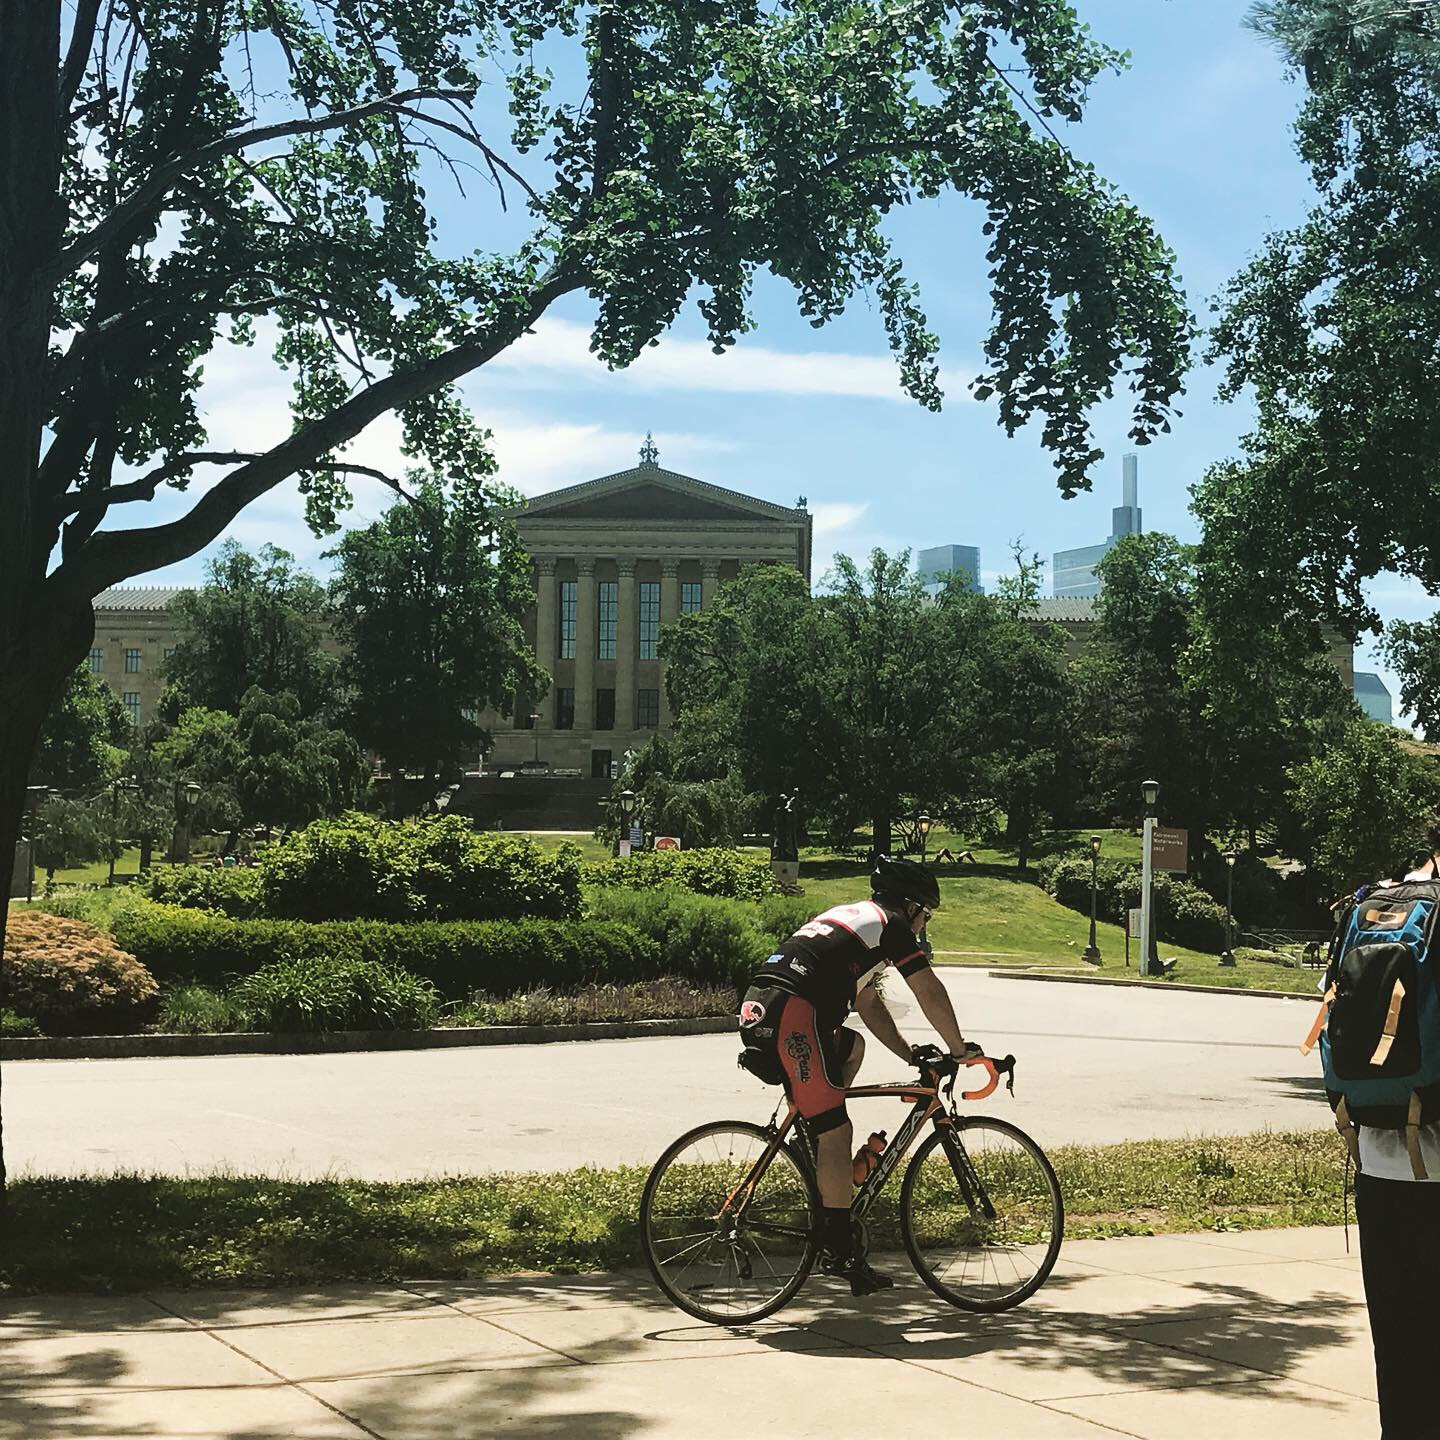 You can bike without helmets in Philly.